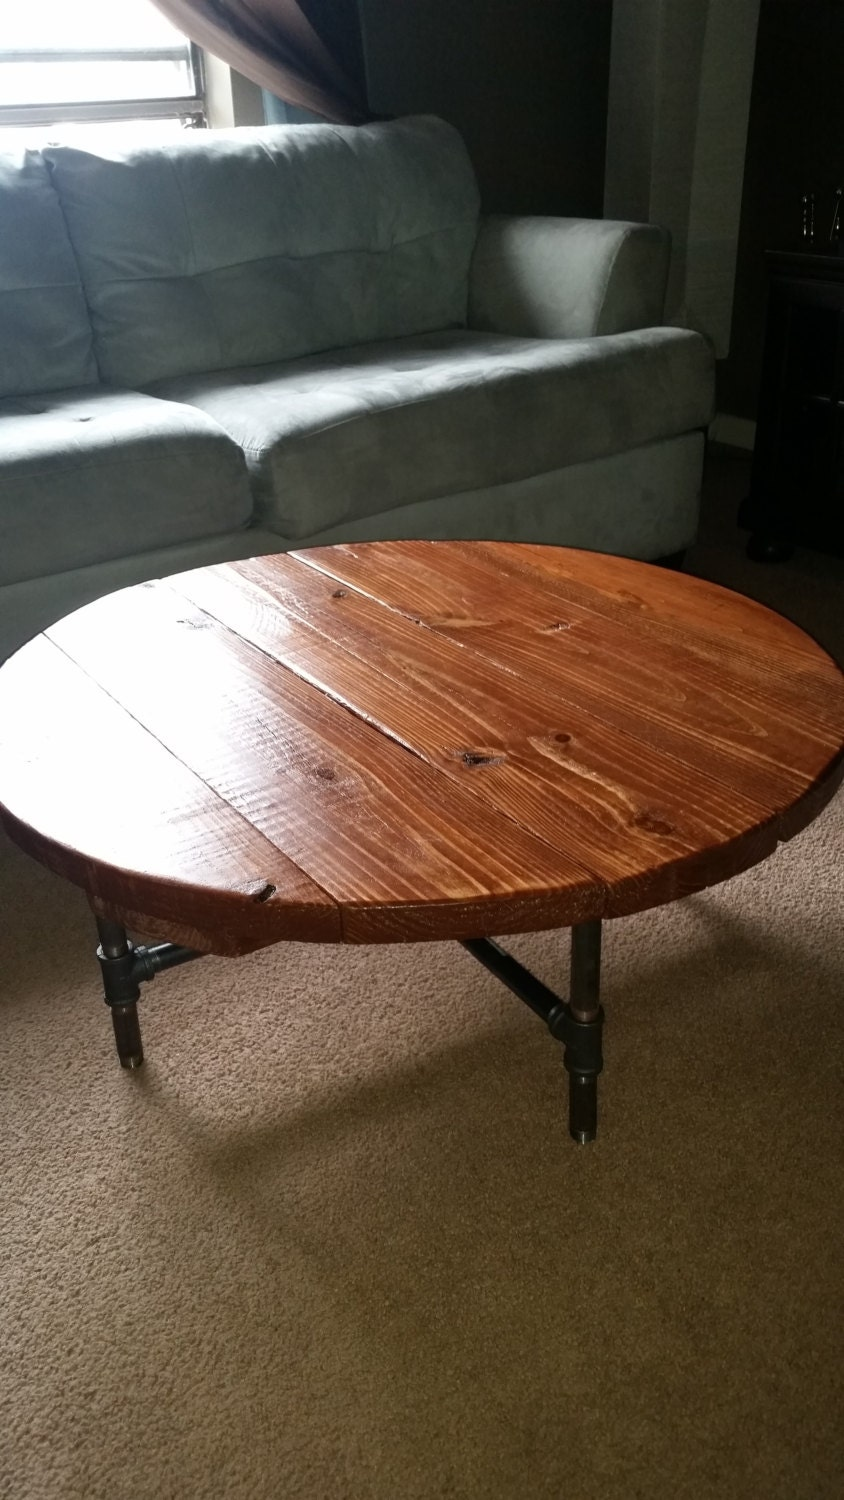 Industrial Pipe Leg Round Dining Table 36 : ilfullxfull747043142i26j from www.etsy.com size 844 x 1500 jpeg 234kB